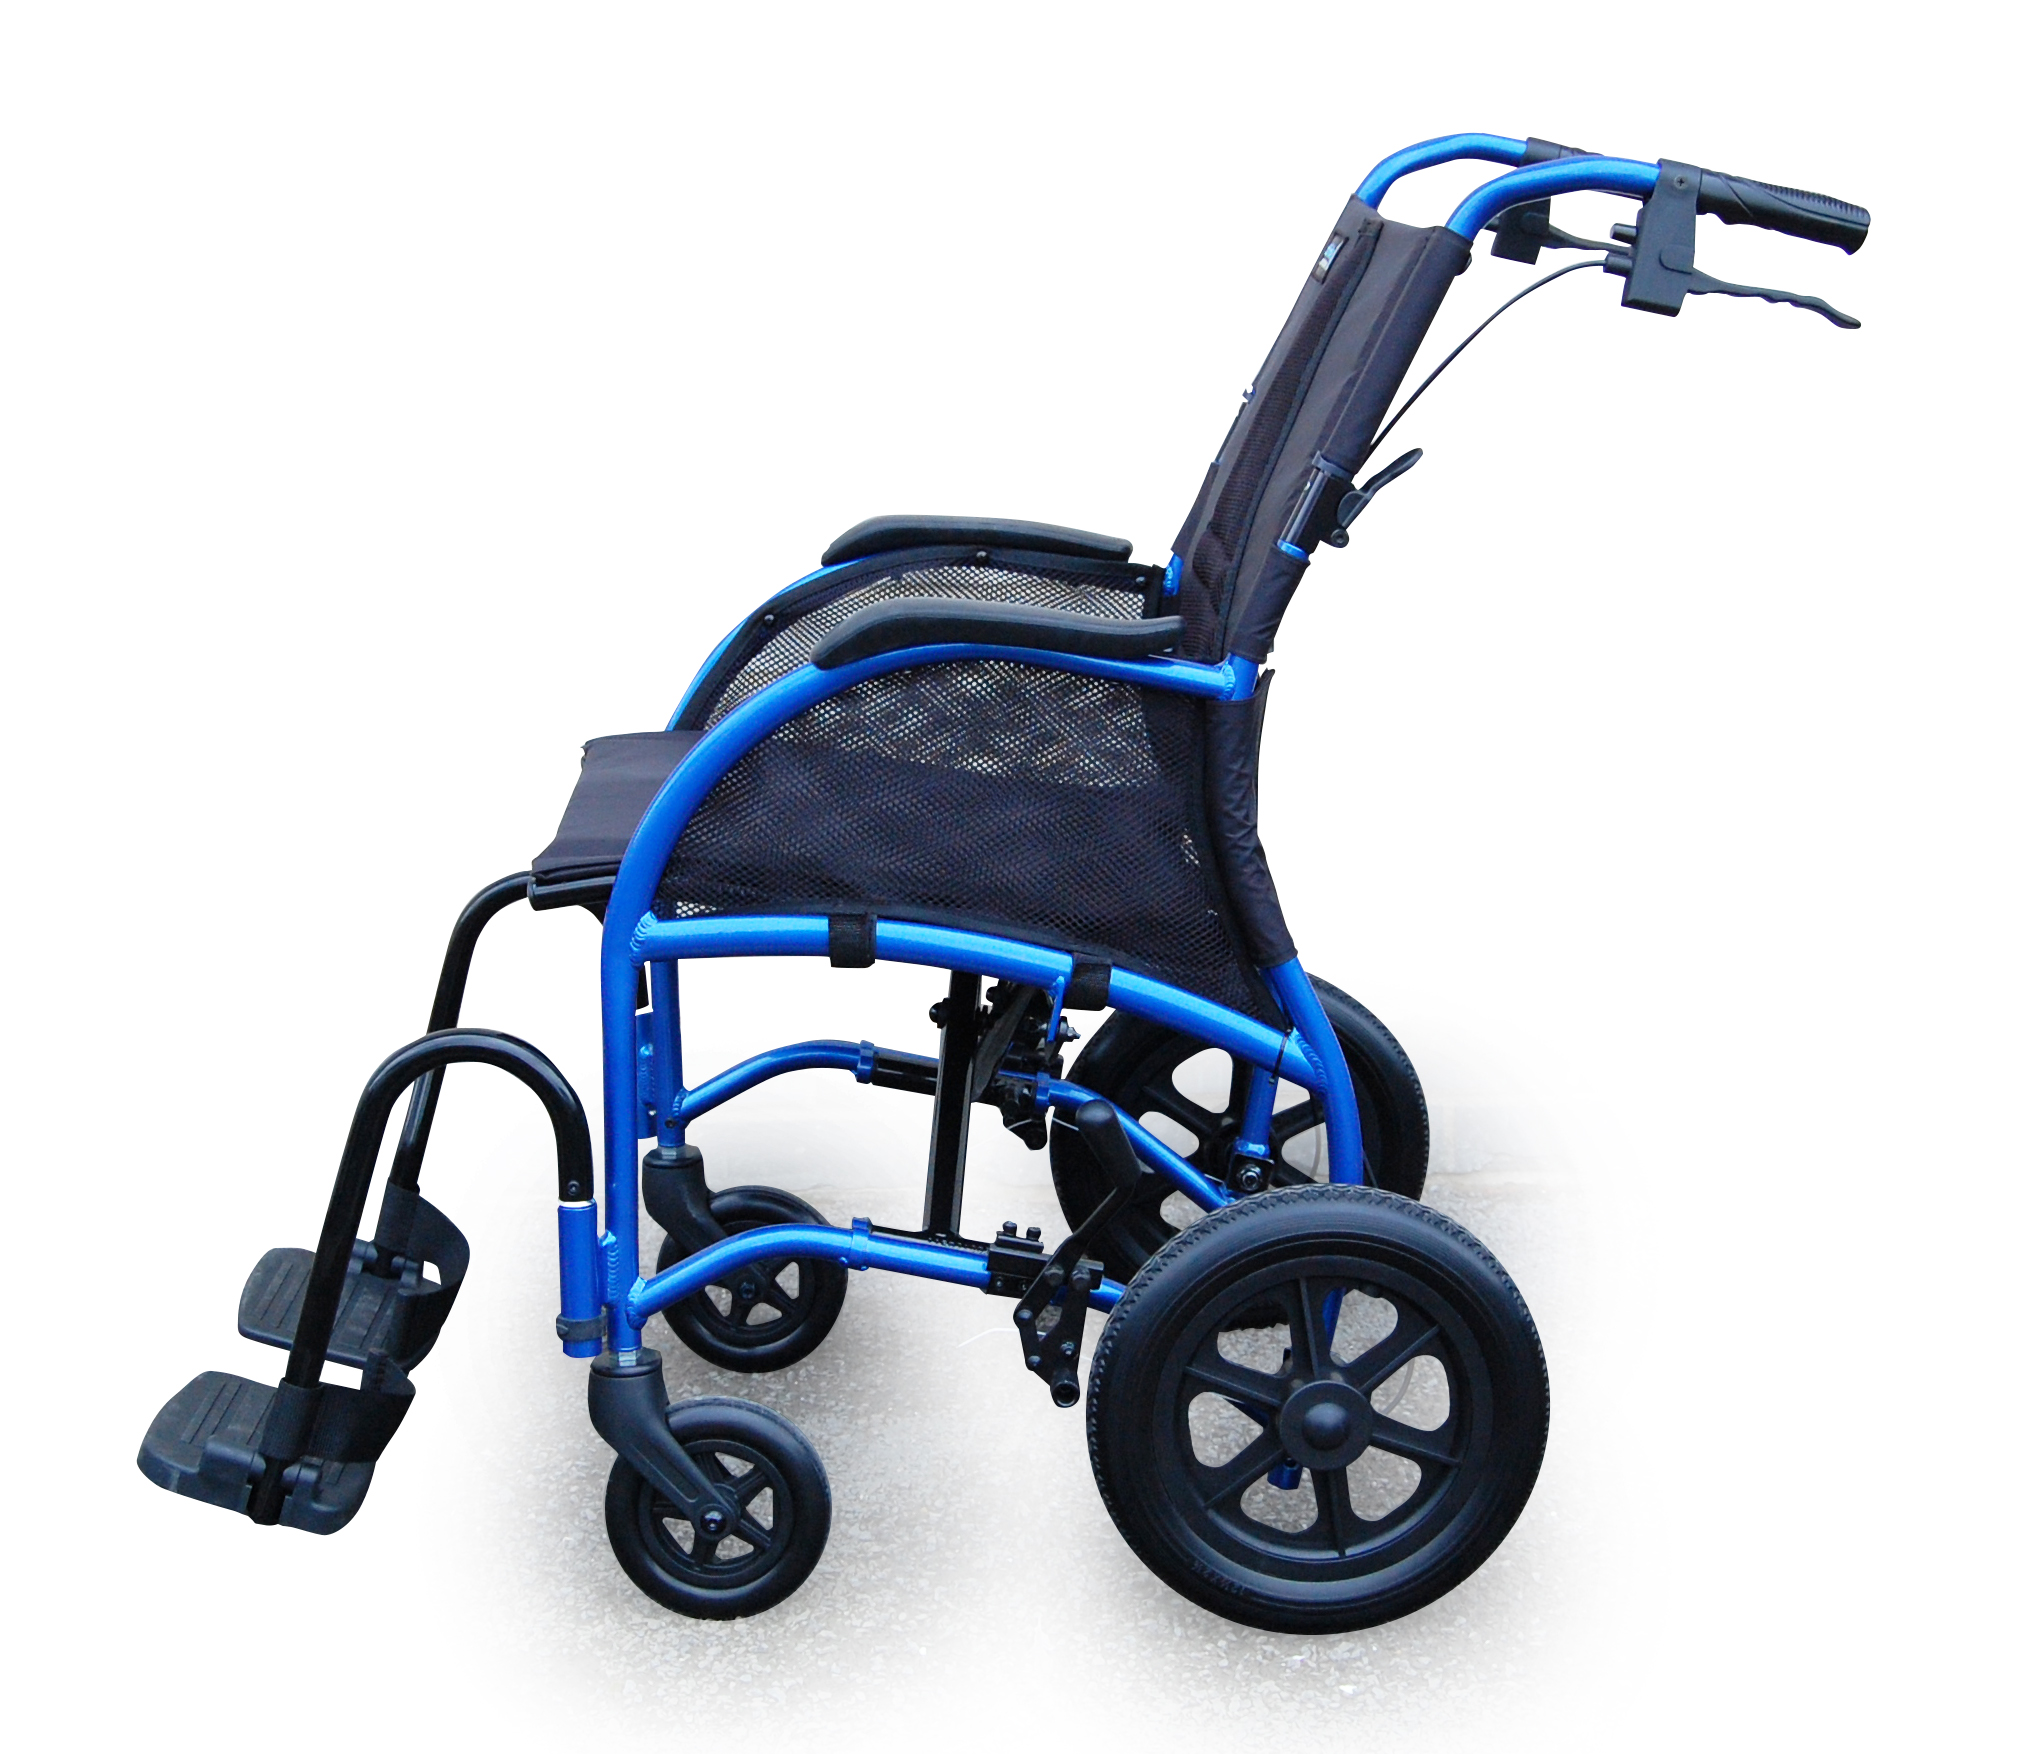 TGA MOBILITY TO LAUNCH NEW ERGONOMIC 'STRONGBACK' WHEELCHAIR AT NAIDEX